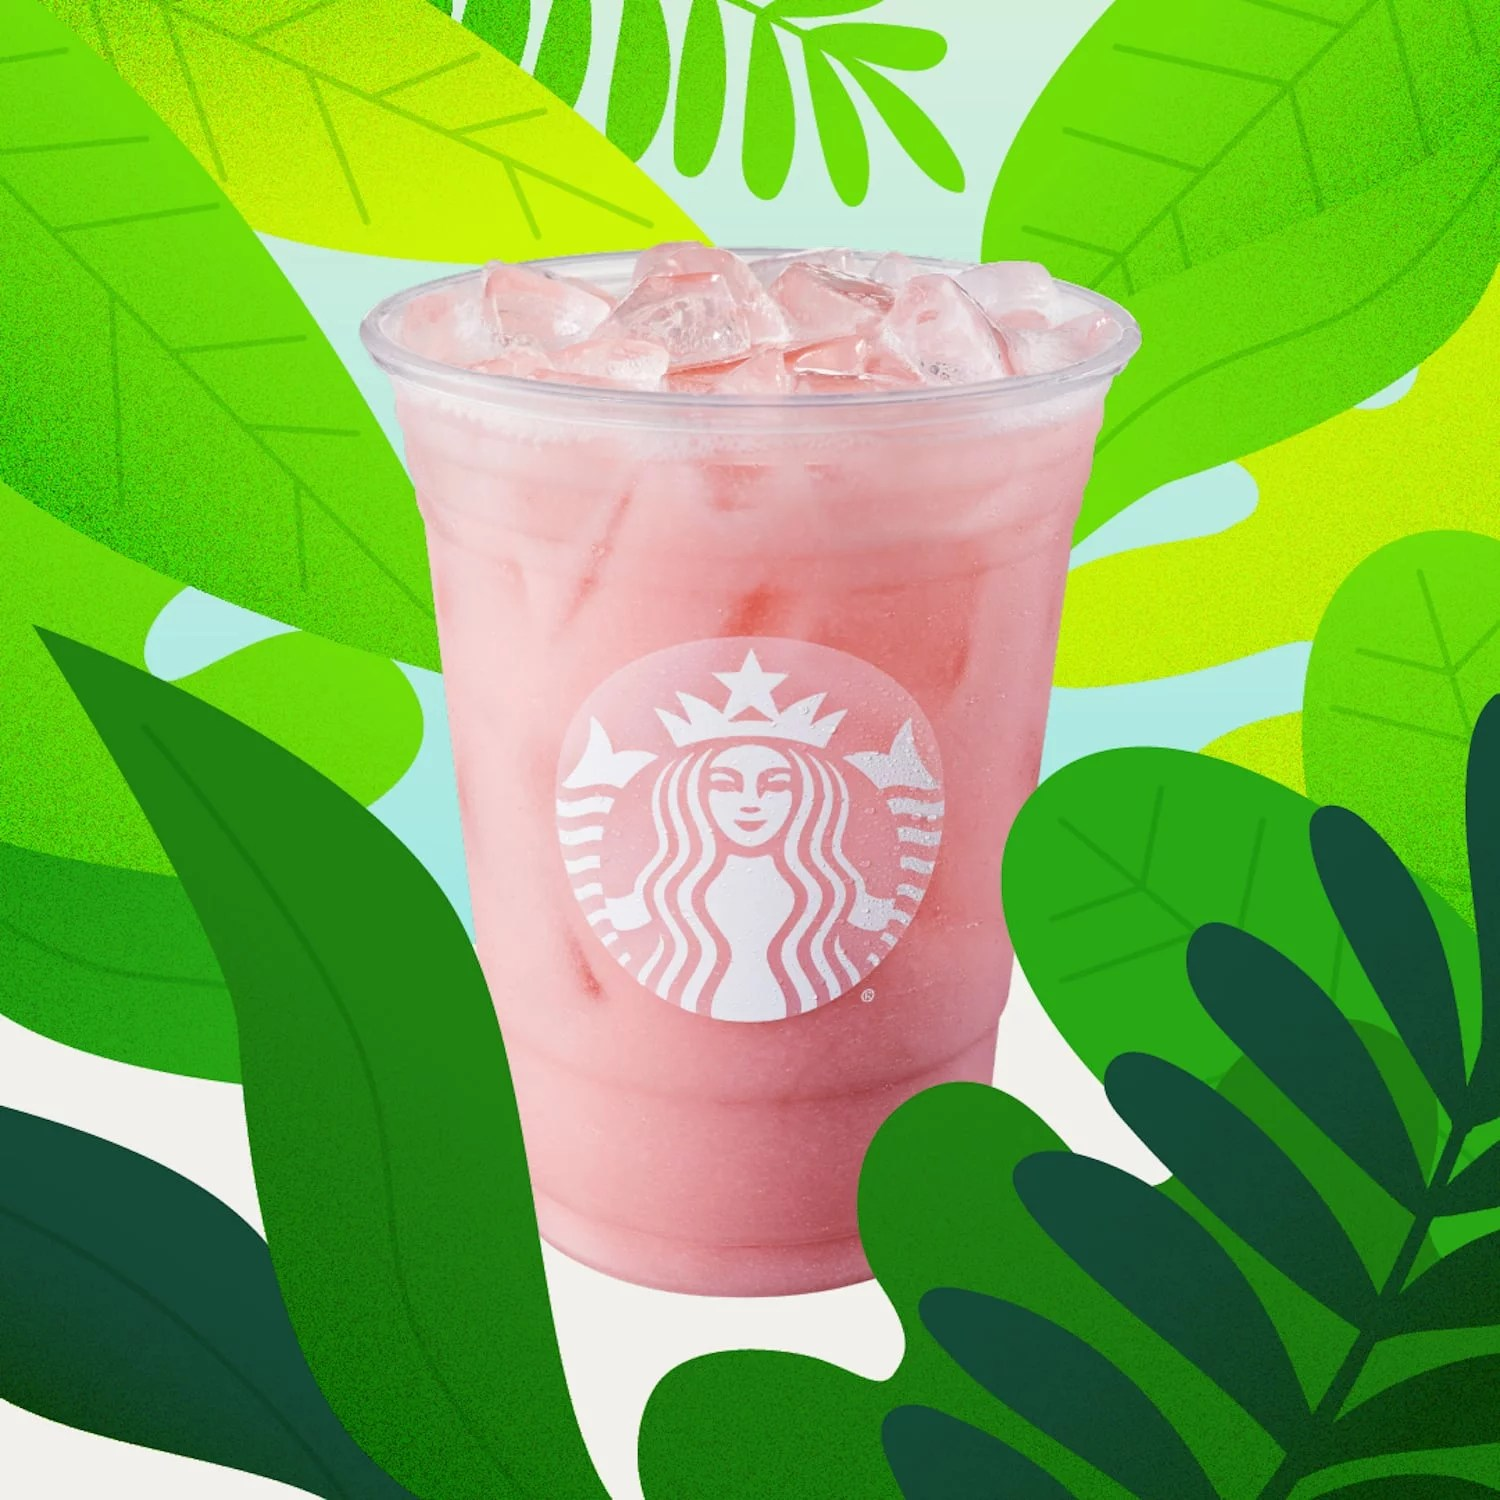 This Is How to Order the New Starbucks Guava Passionfruit Drink If You're on the Keto Diet